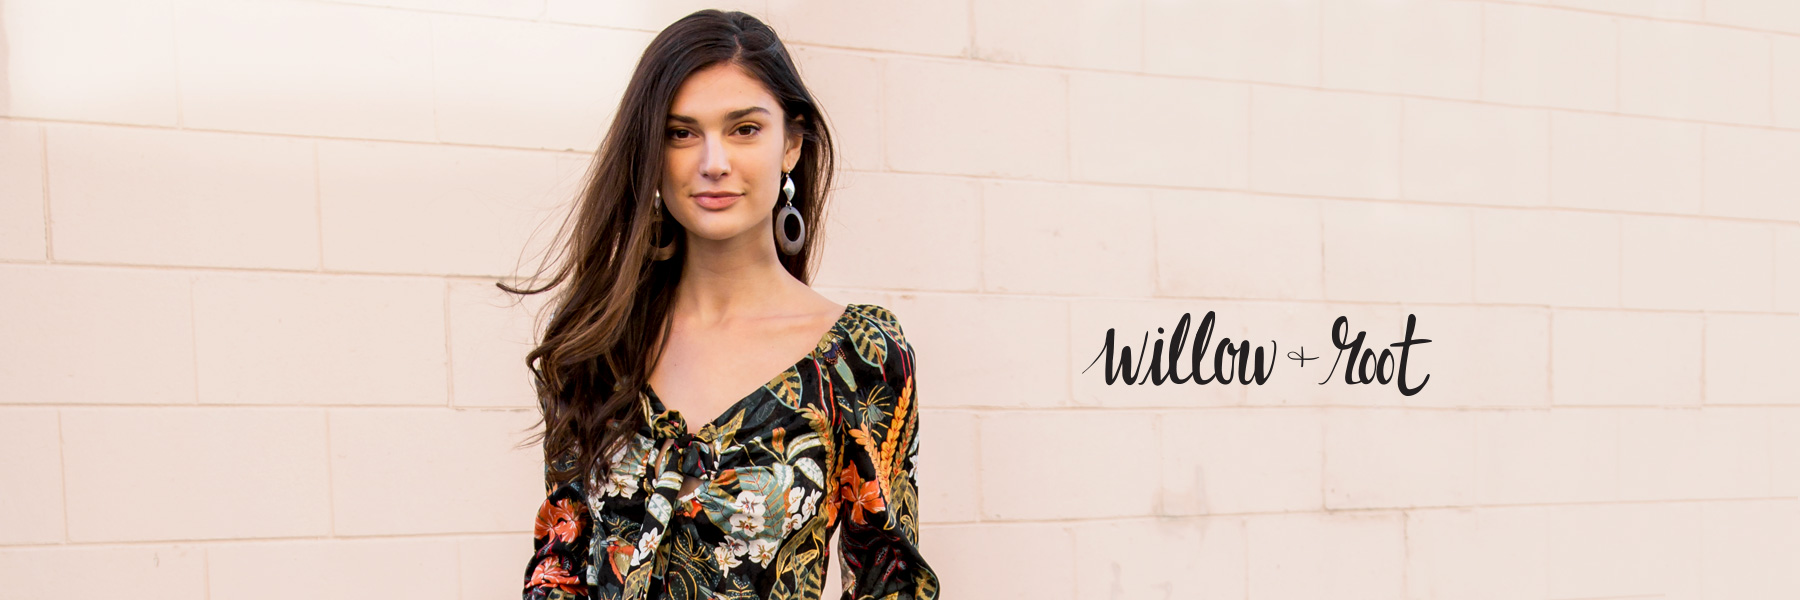 Shop Willow & Root - Girl wearing a black floral Willow & Root top